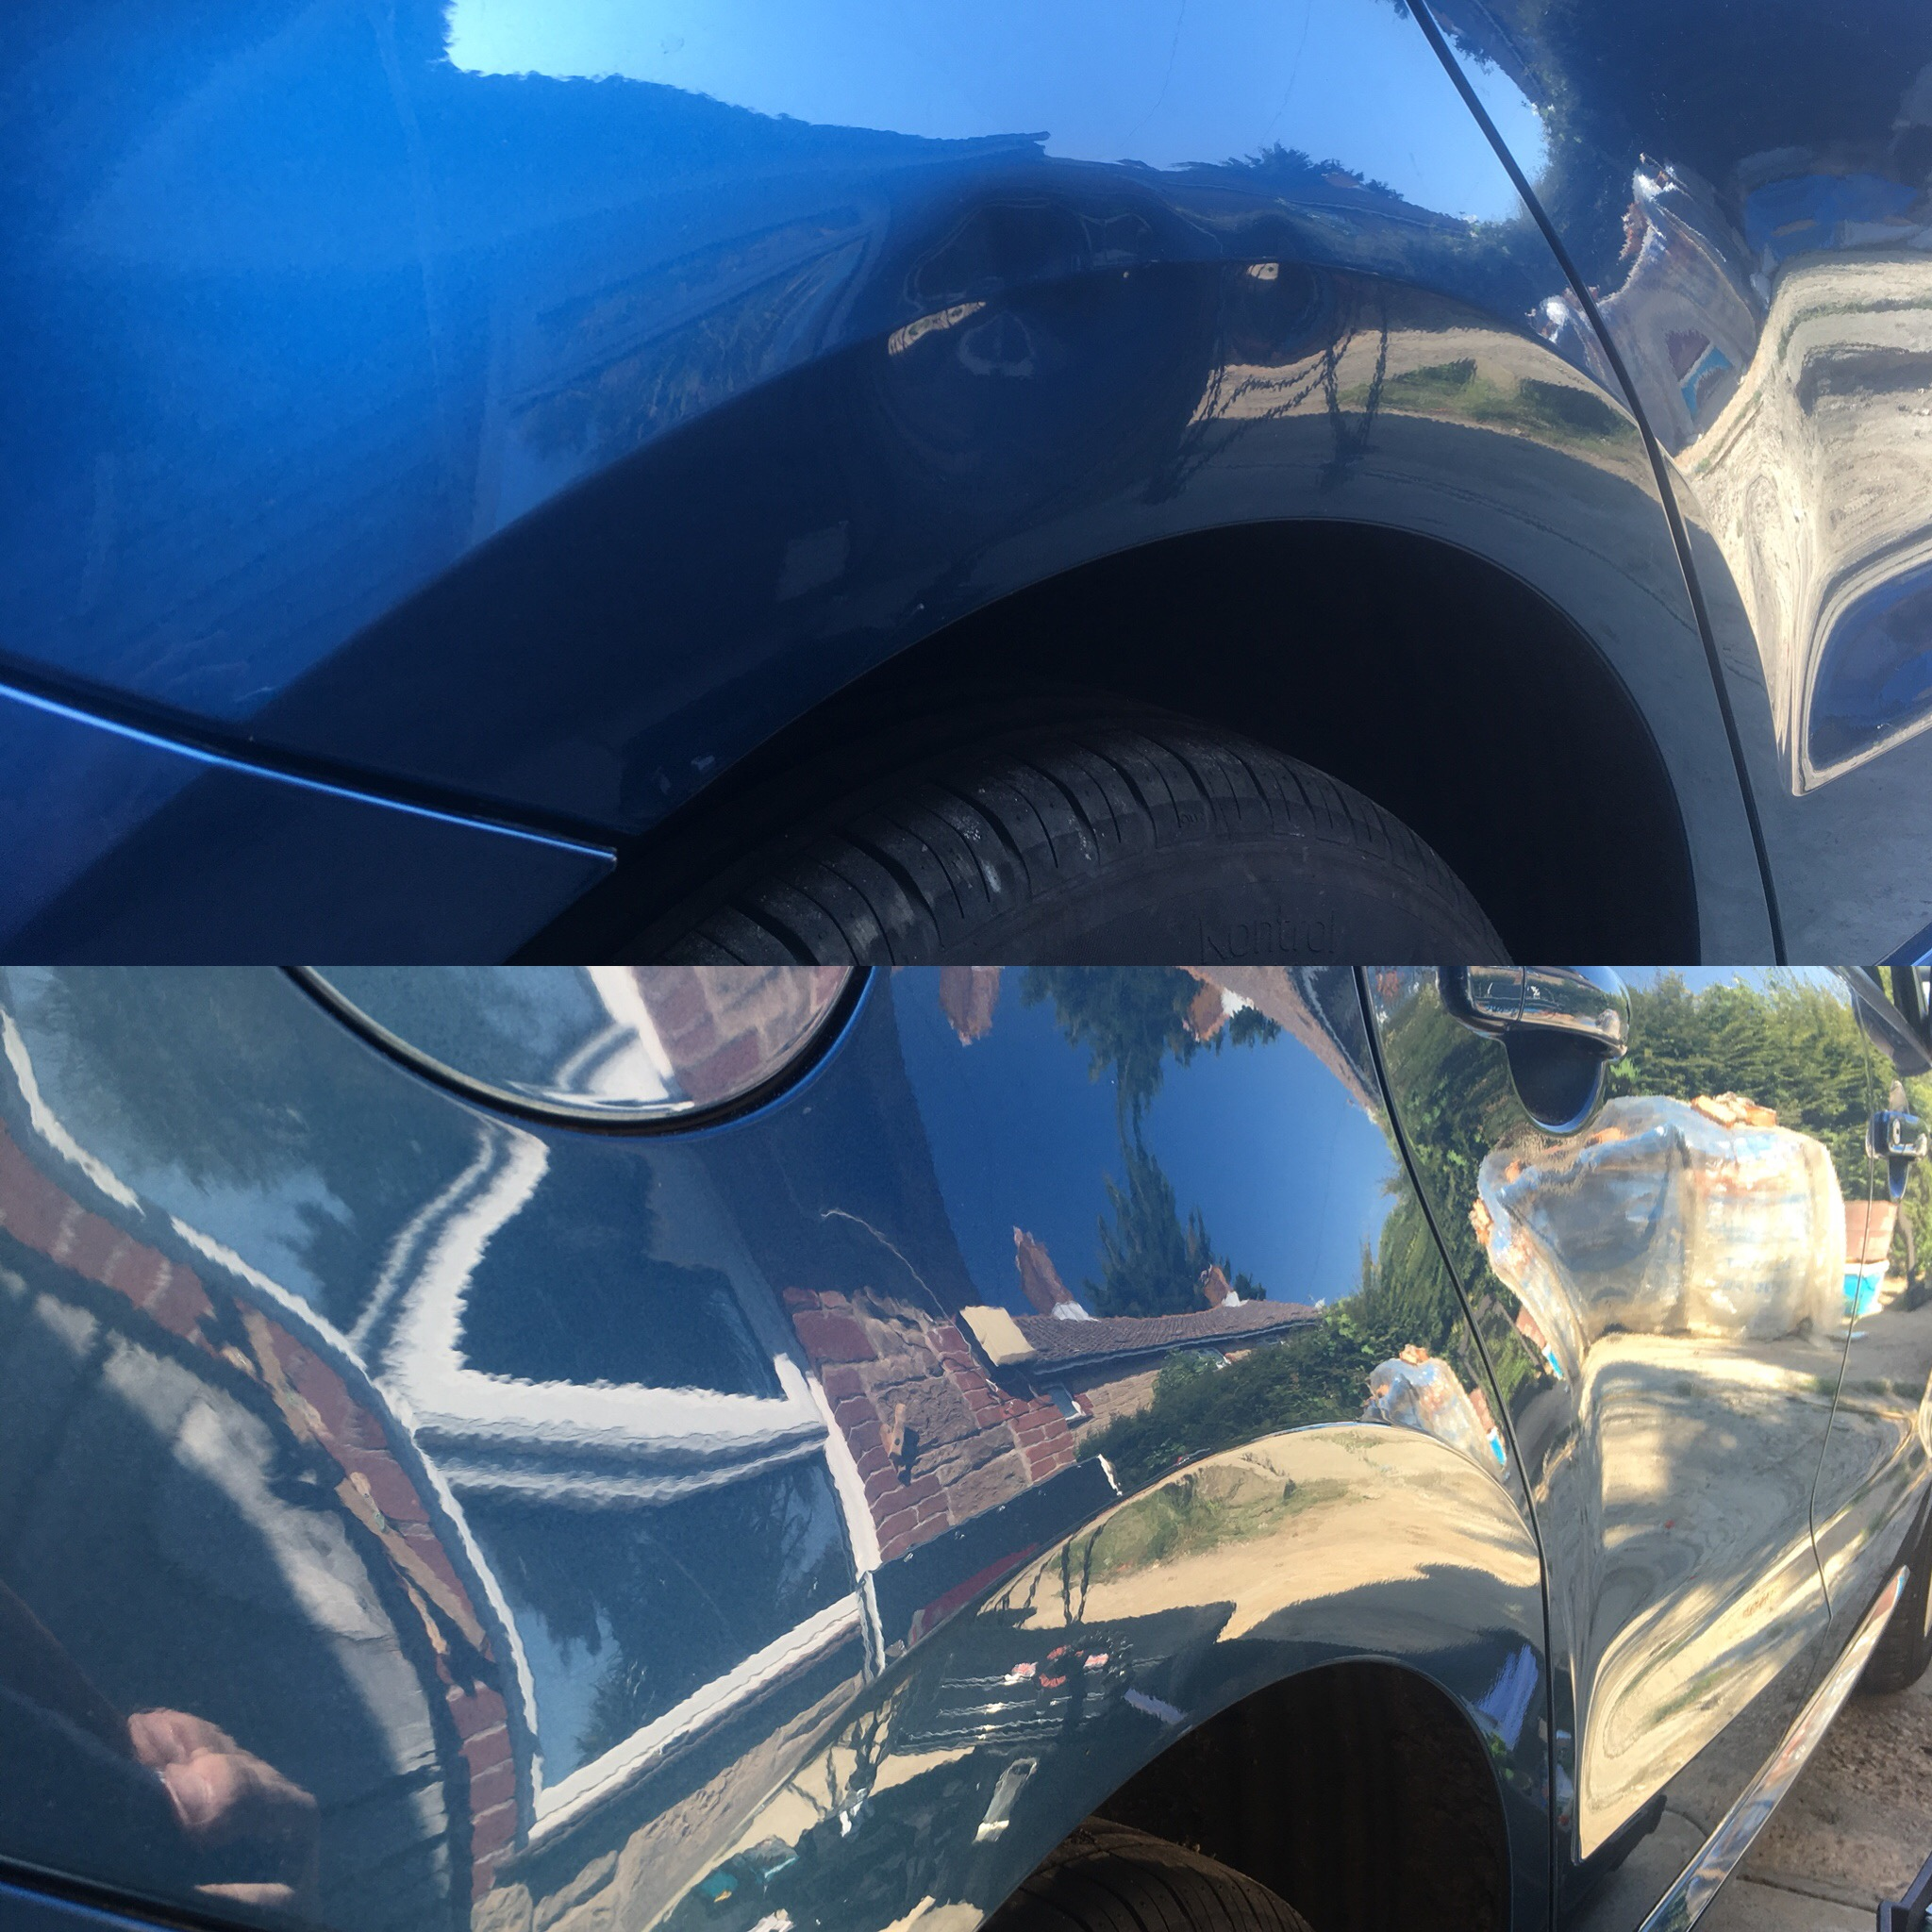 Vw polo Rear wing Repair